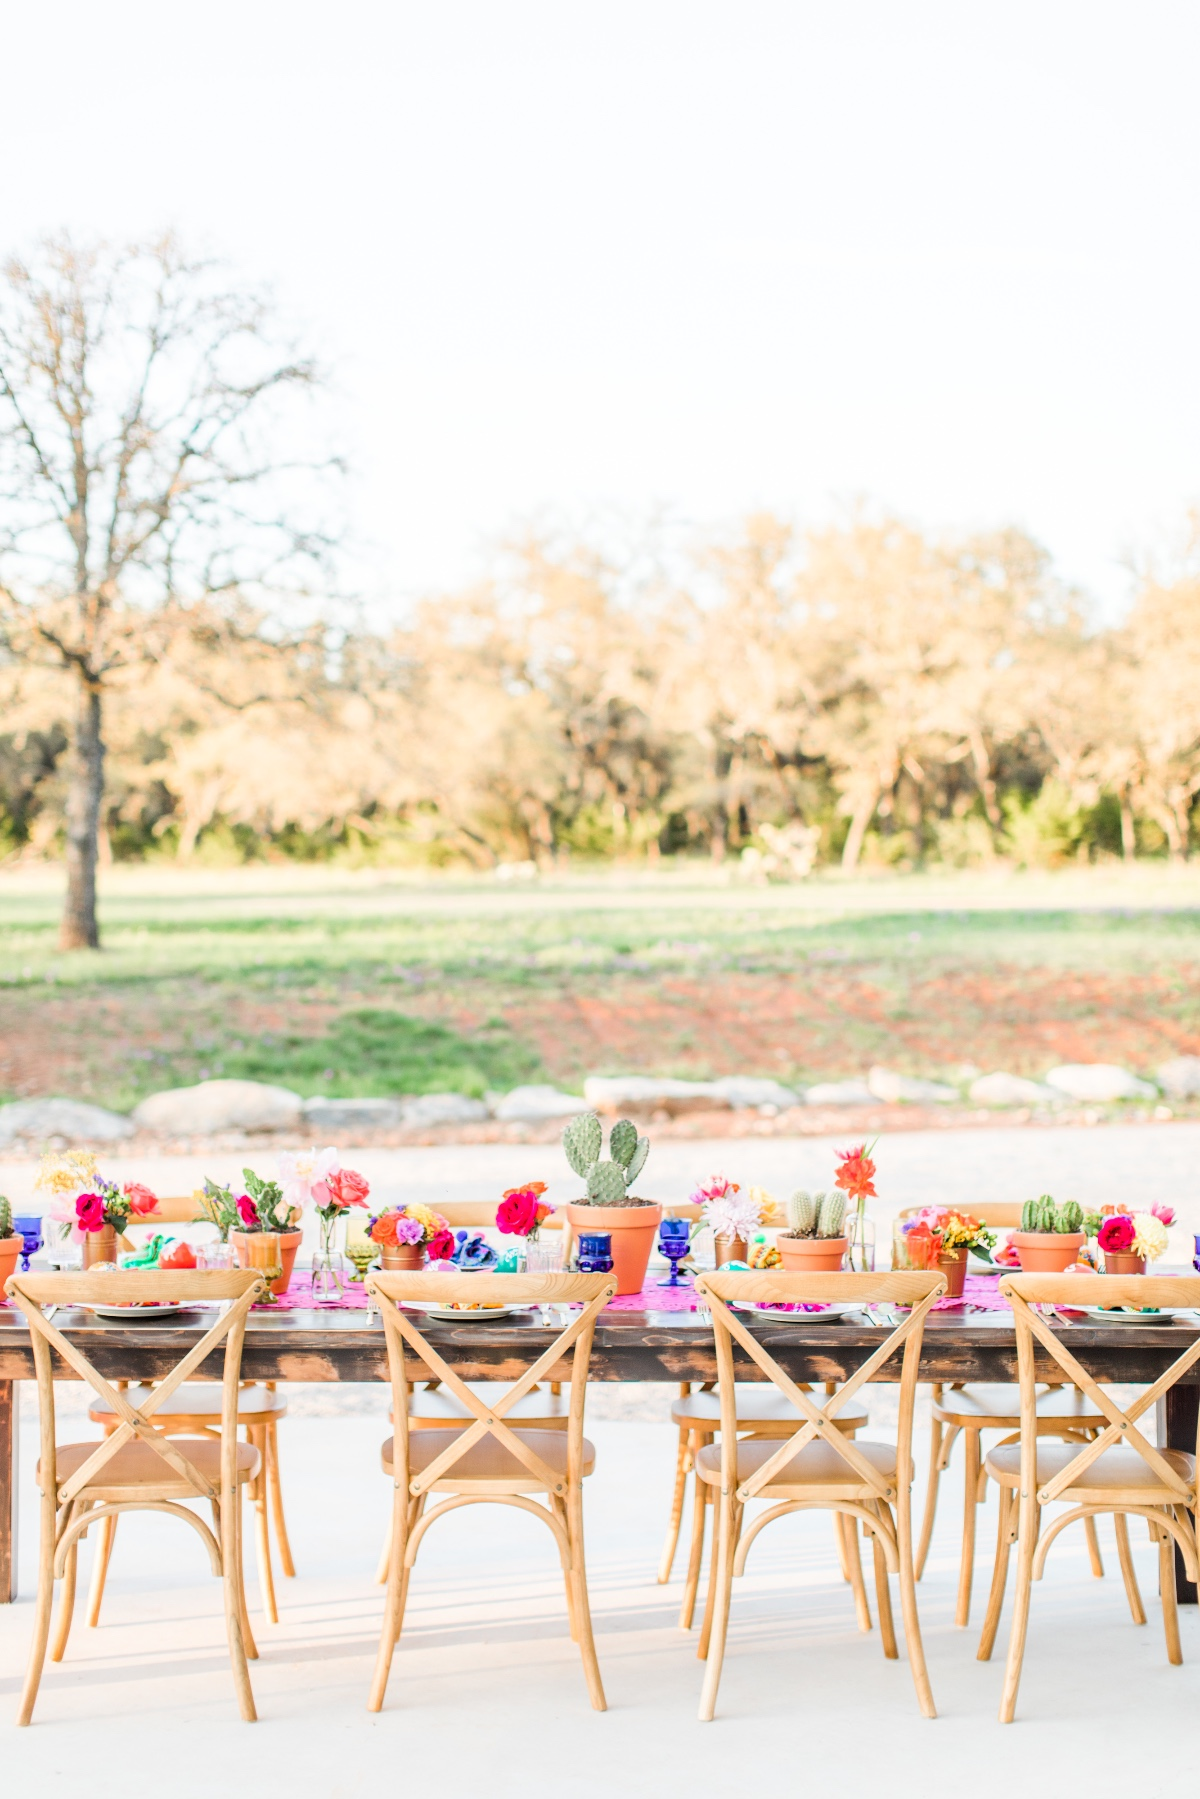 Fiesta themed wedding reception